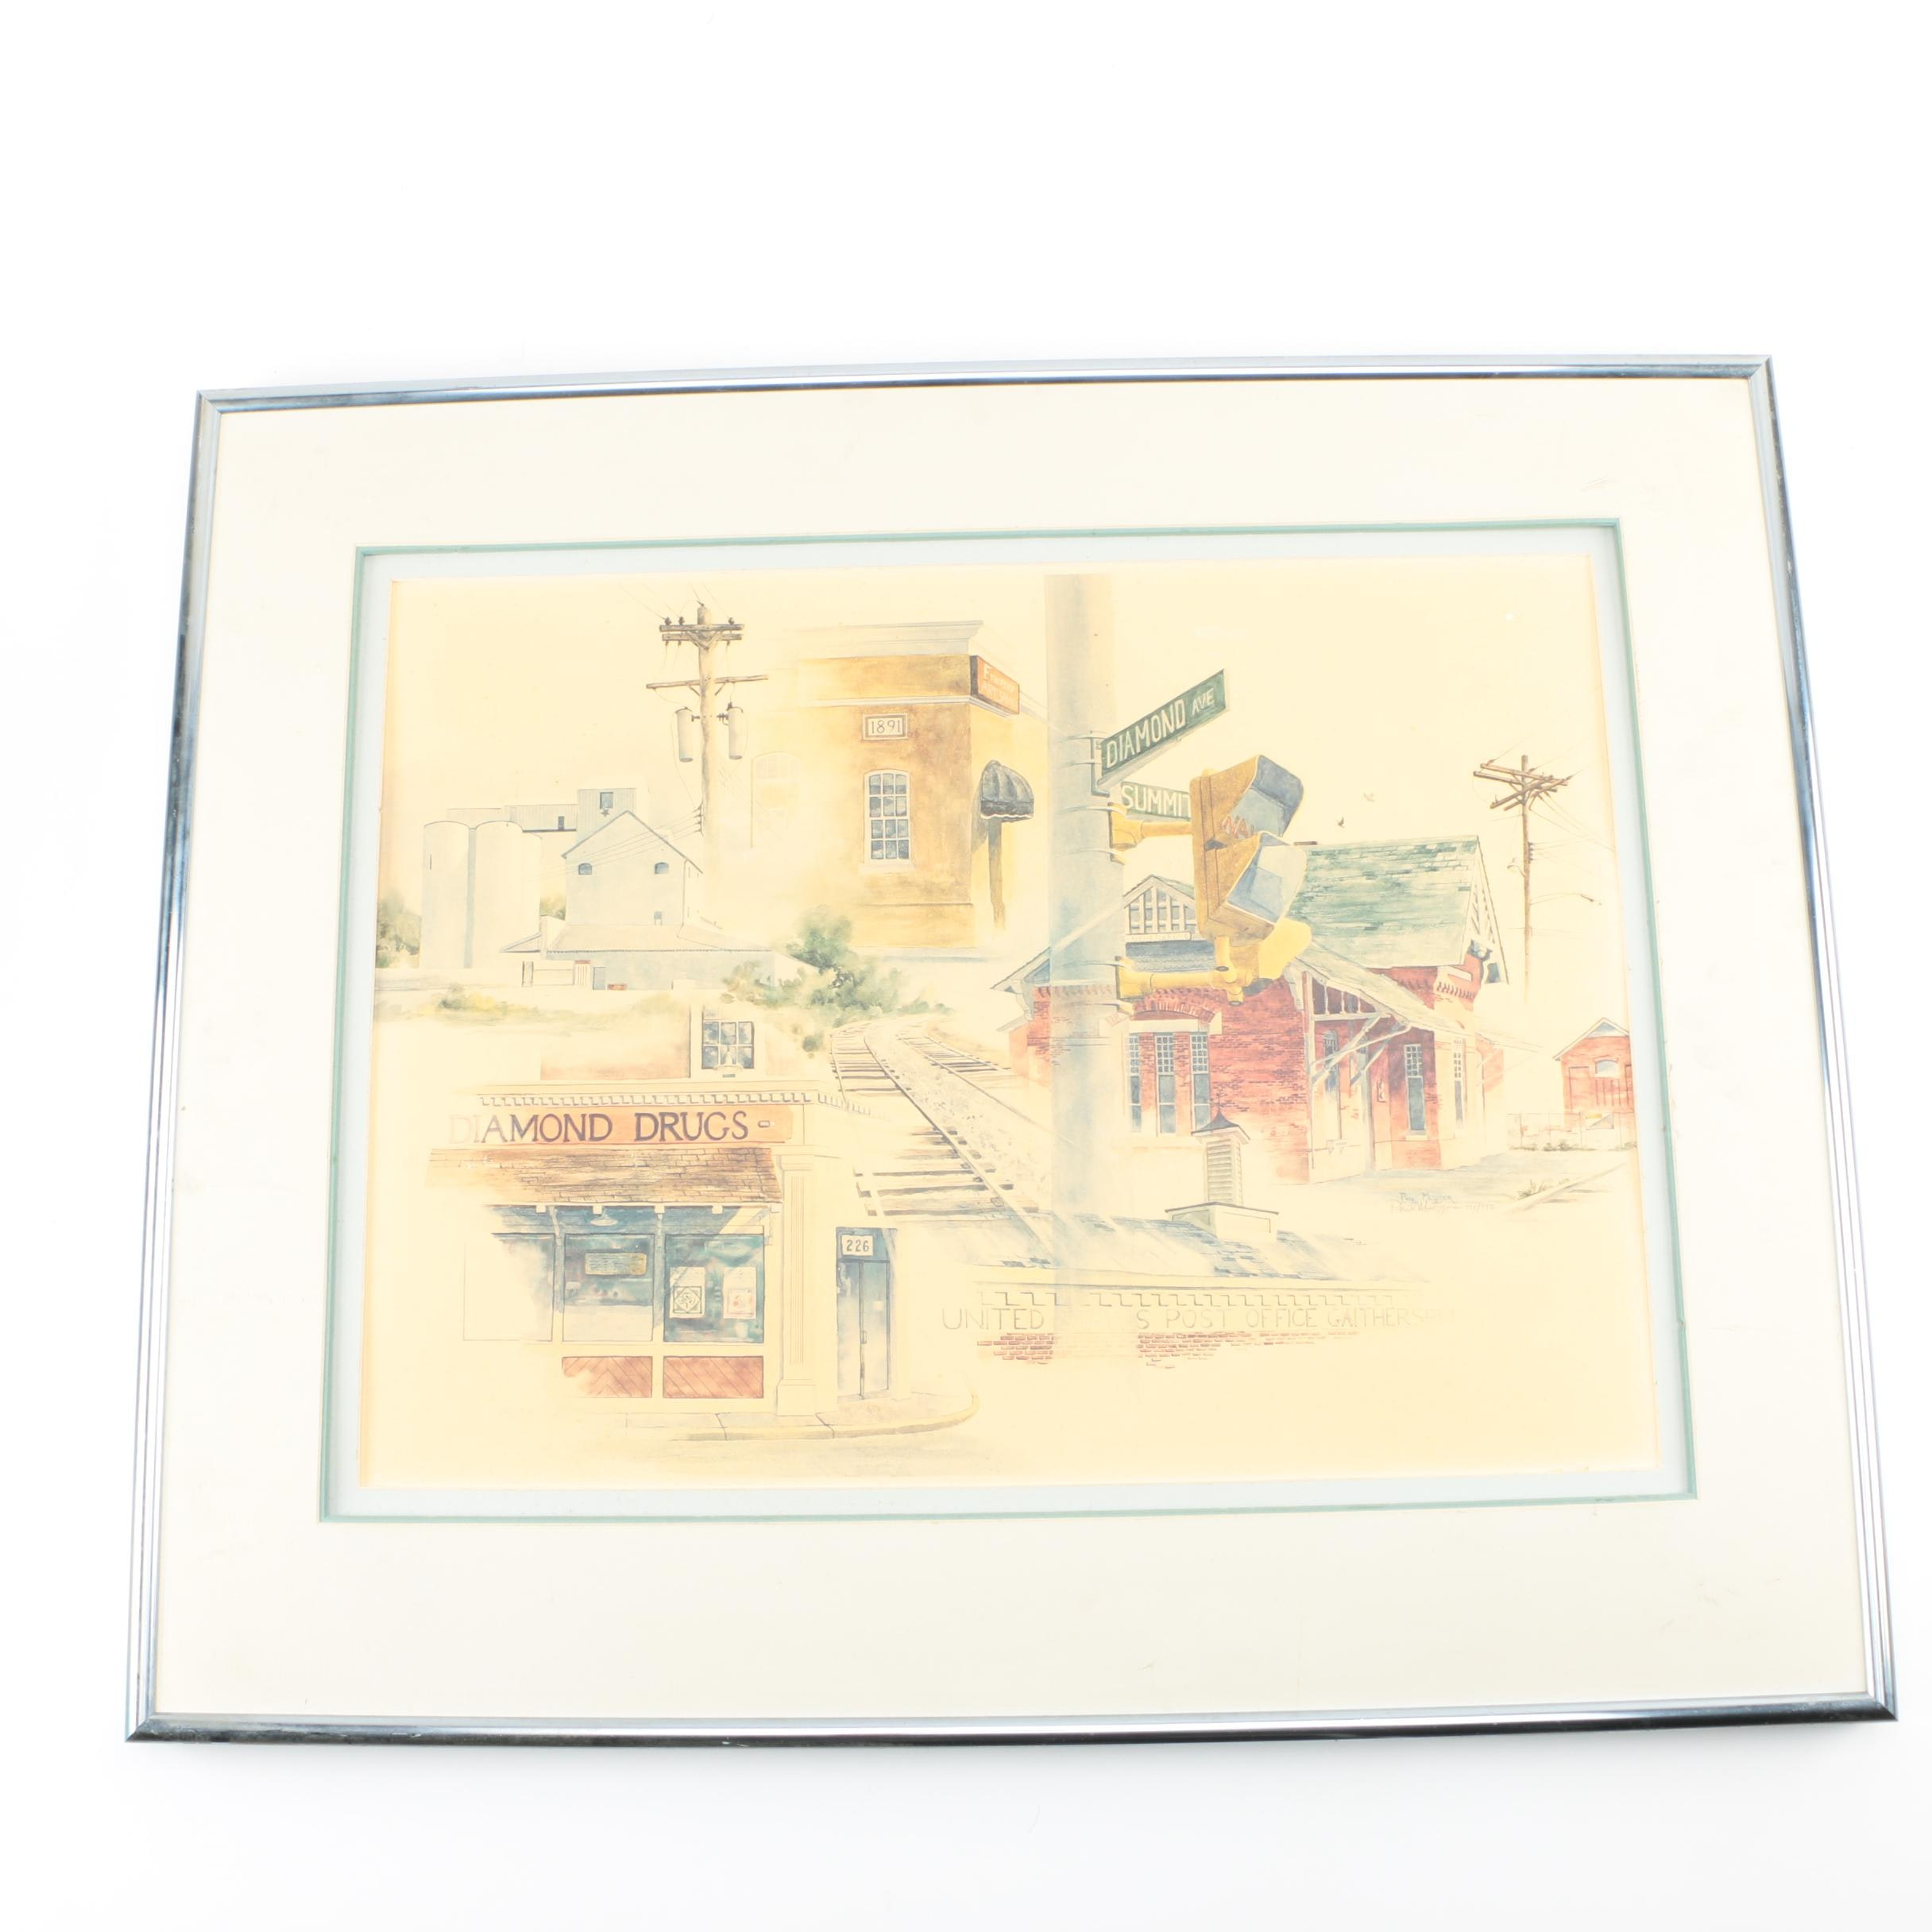 Hand-signed Limited Edition Offset Lithograph on Paper